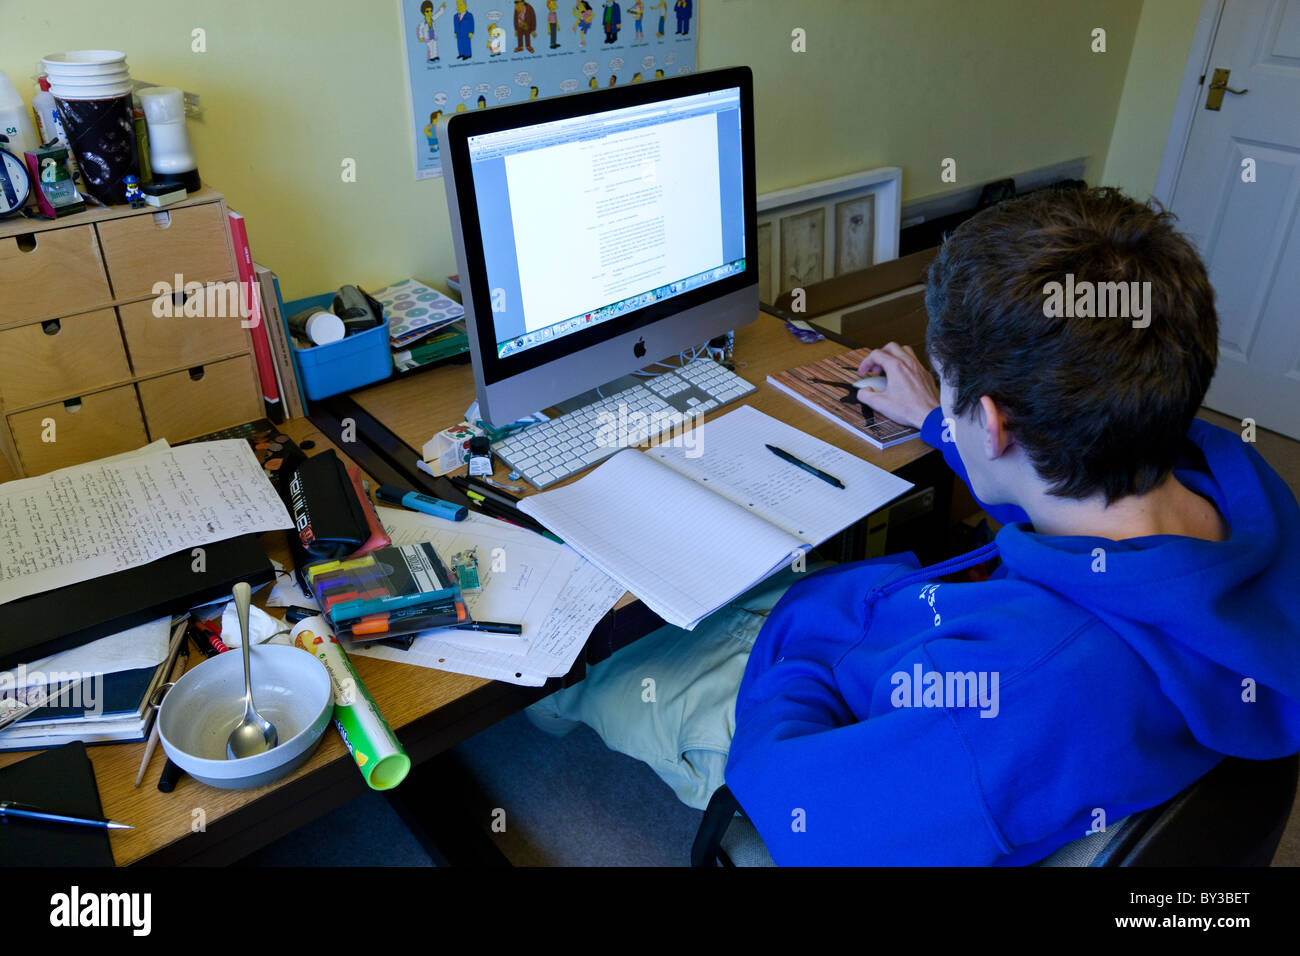 Student Working In His Bedroom With A Messy Desk And An Imac.